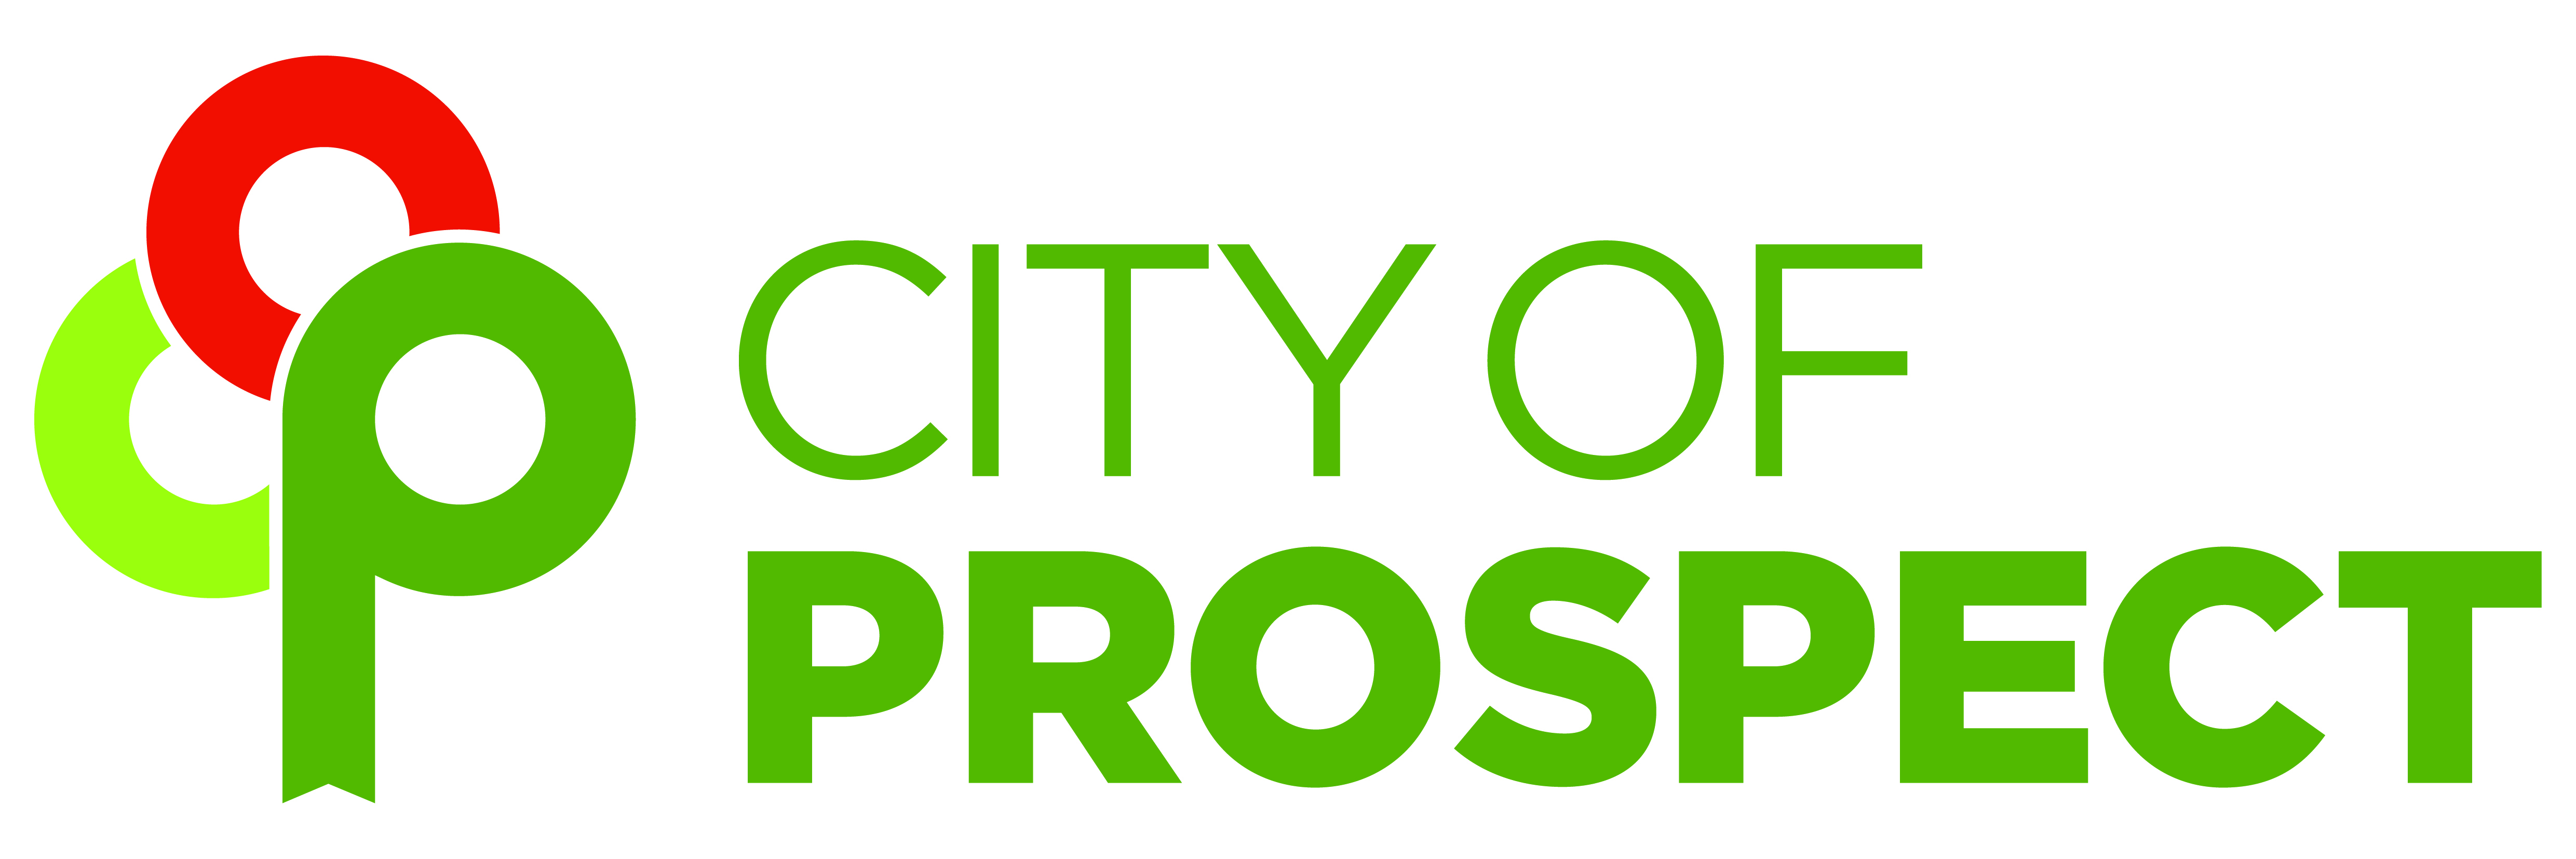 city of prospect east waste